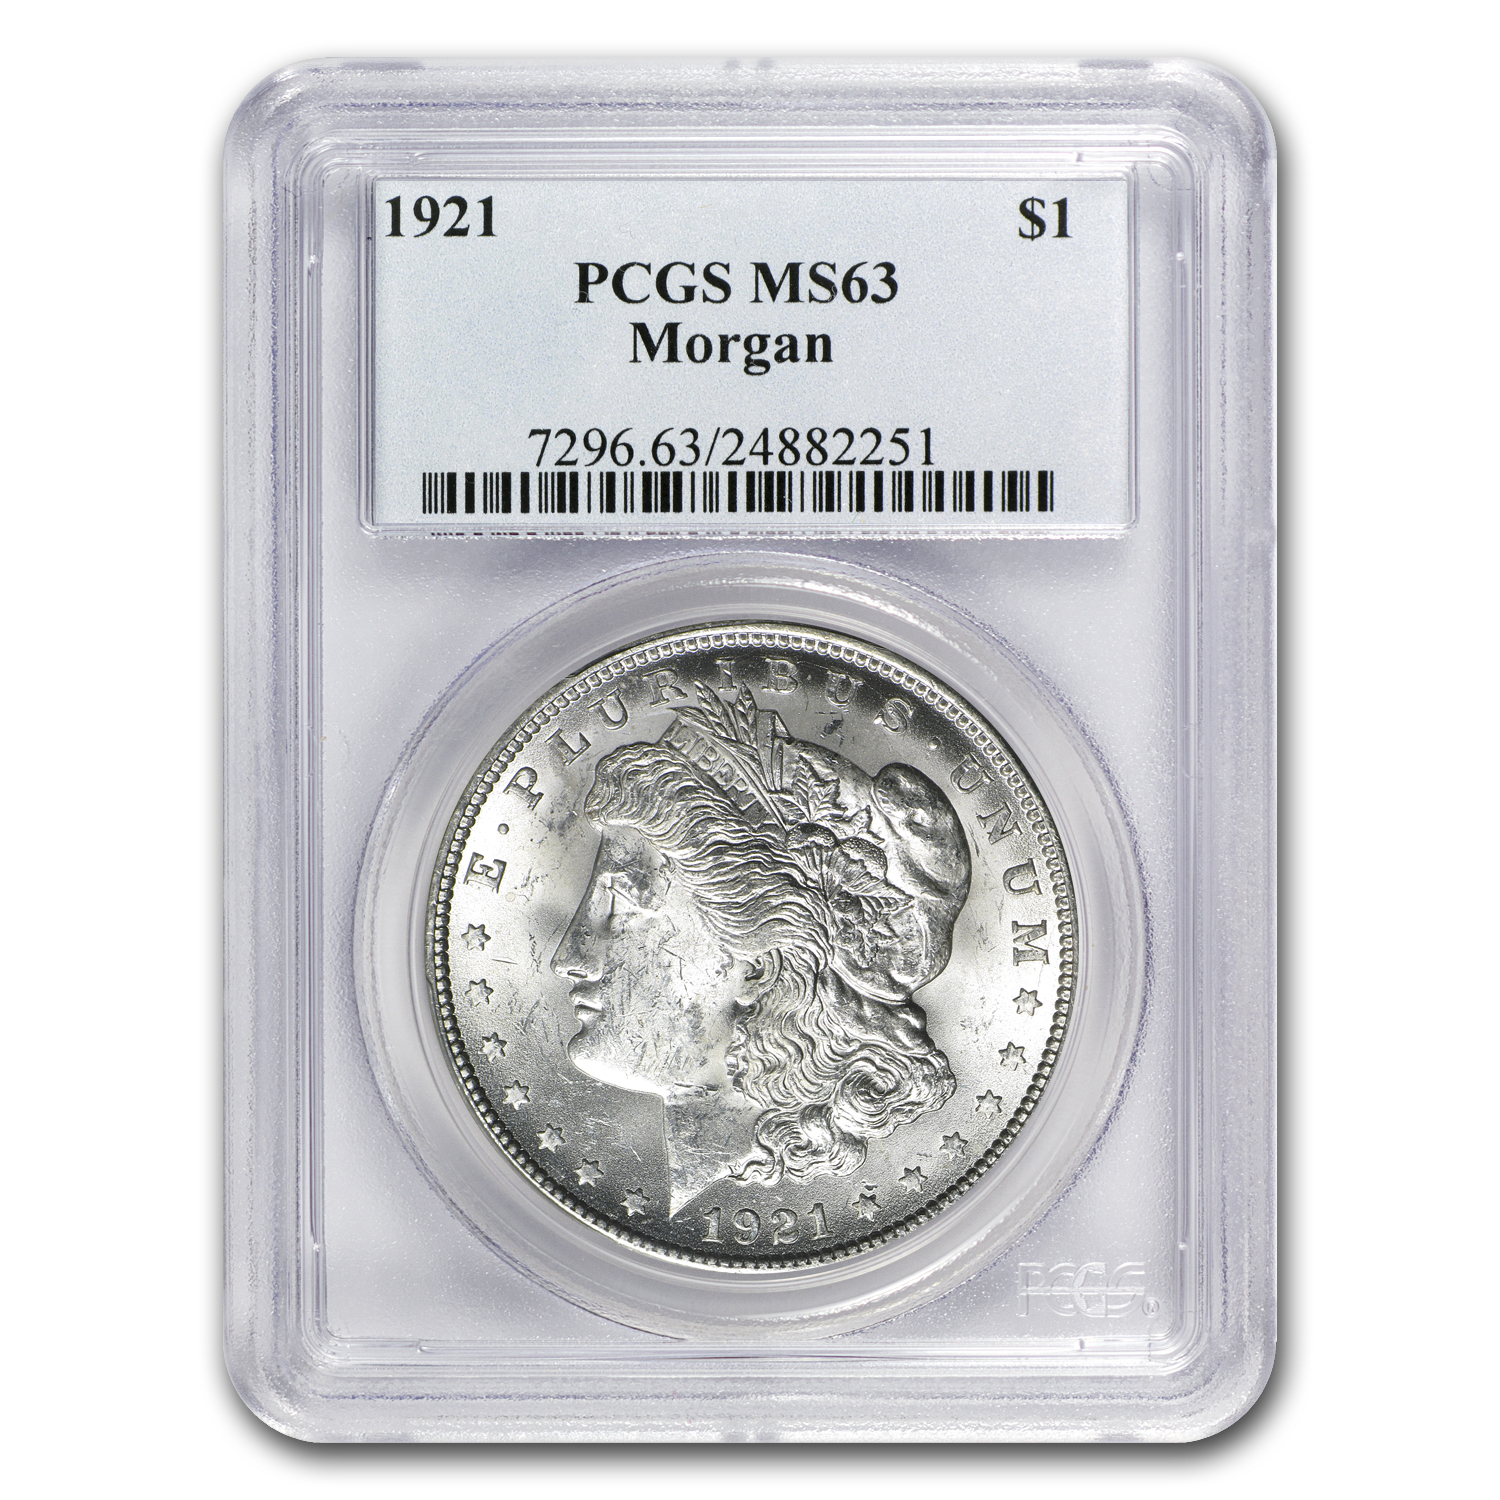 1921 Morgan Dollar P-D-S 3 Coin Set - MS-63 PCGS